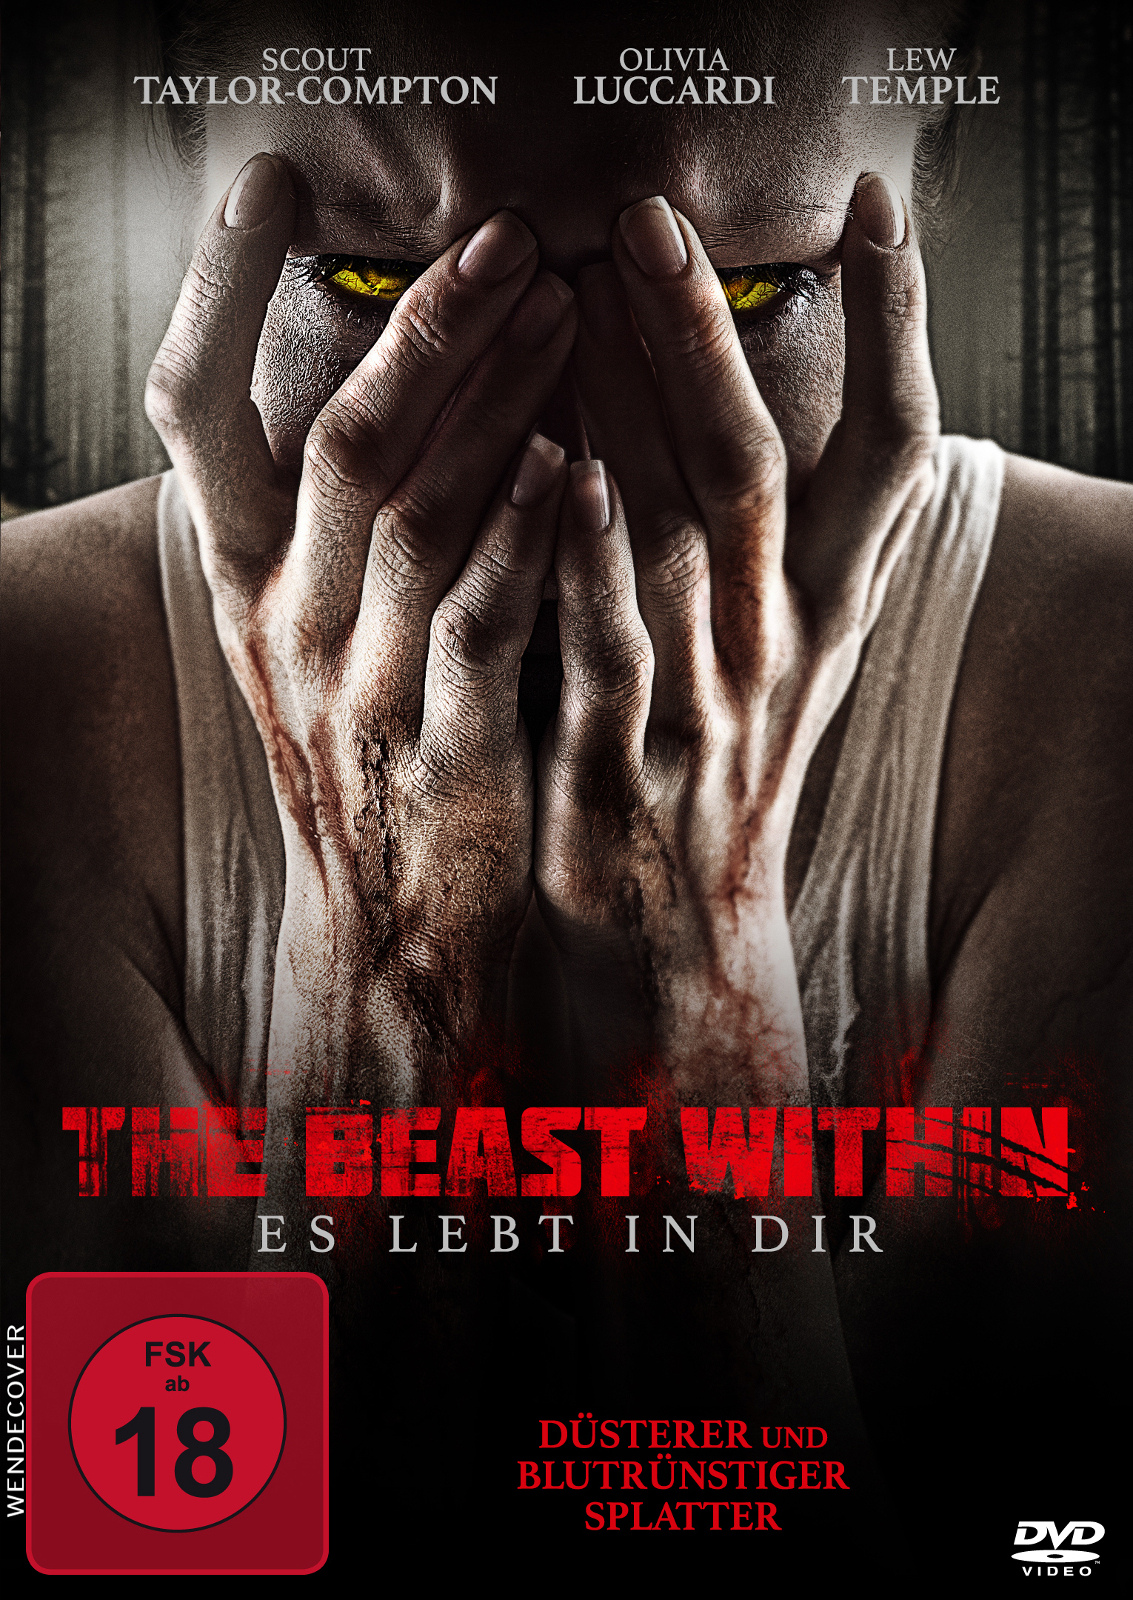 The Beast Within Es Lebt In Dir